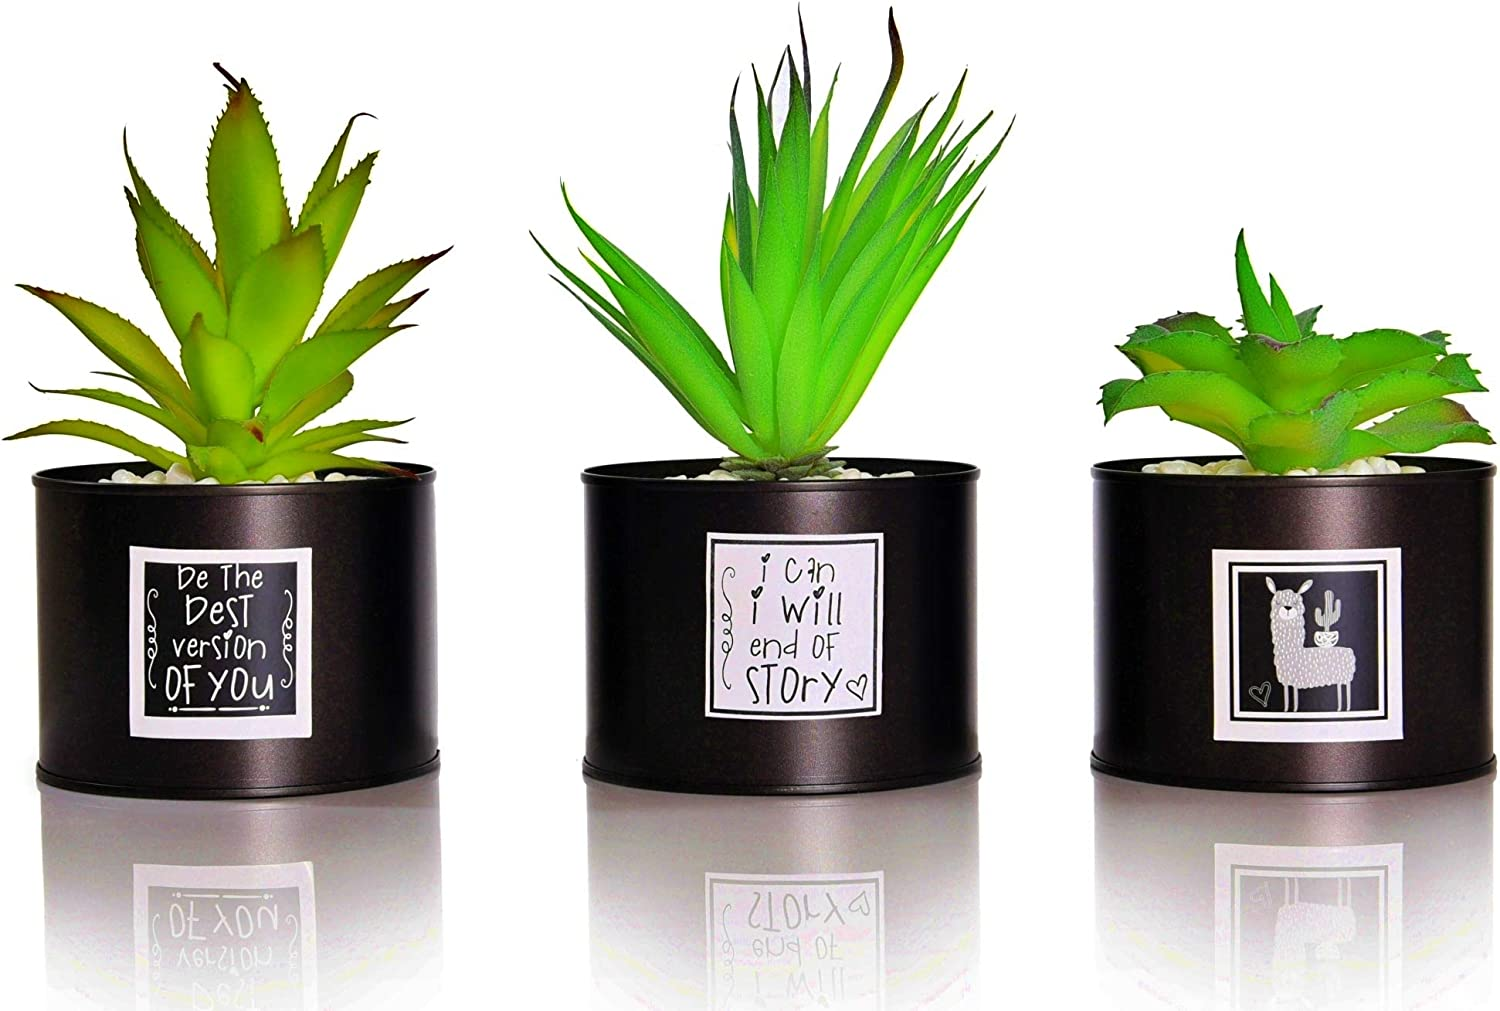 Amazon Com Be Sunny Office Decor For Women Desk Cactus Decorations Set Of 3 Fake Succulent In Black Luxury Pots Llama And Inspirational Signs Included Desk Decorations For Women